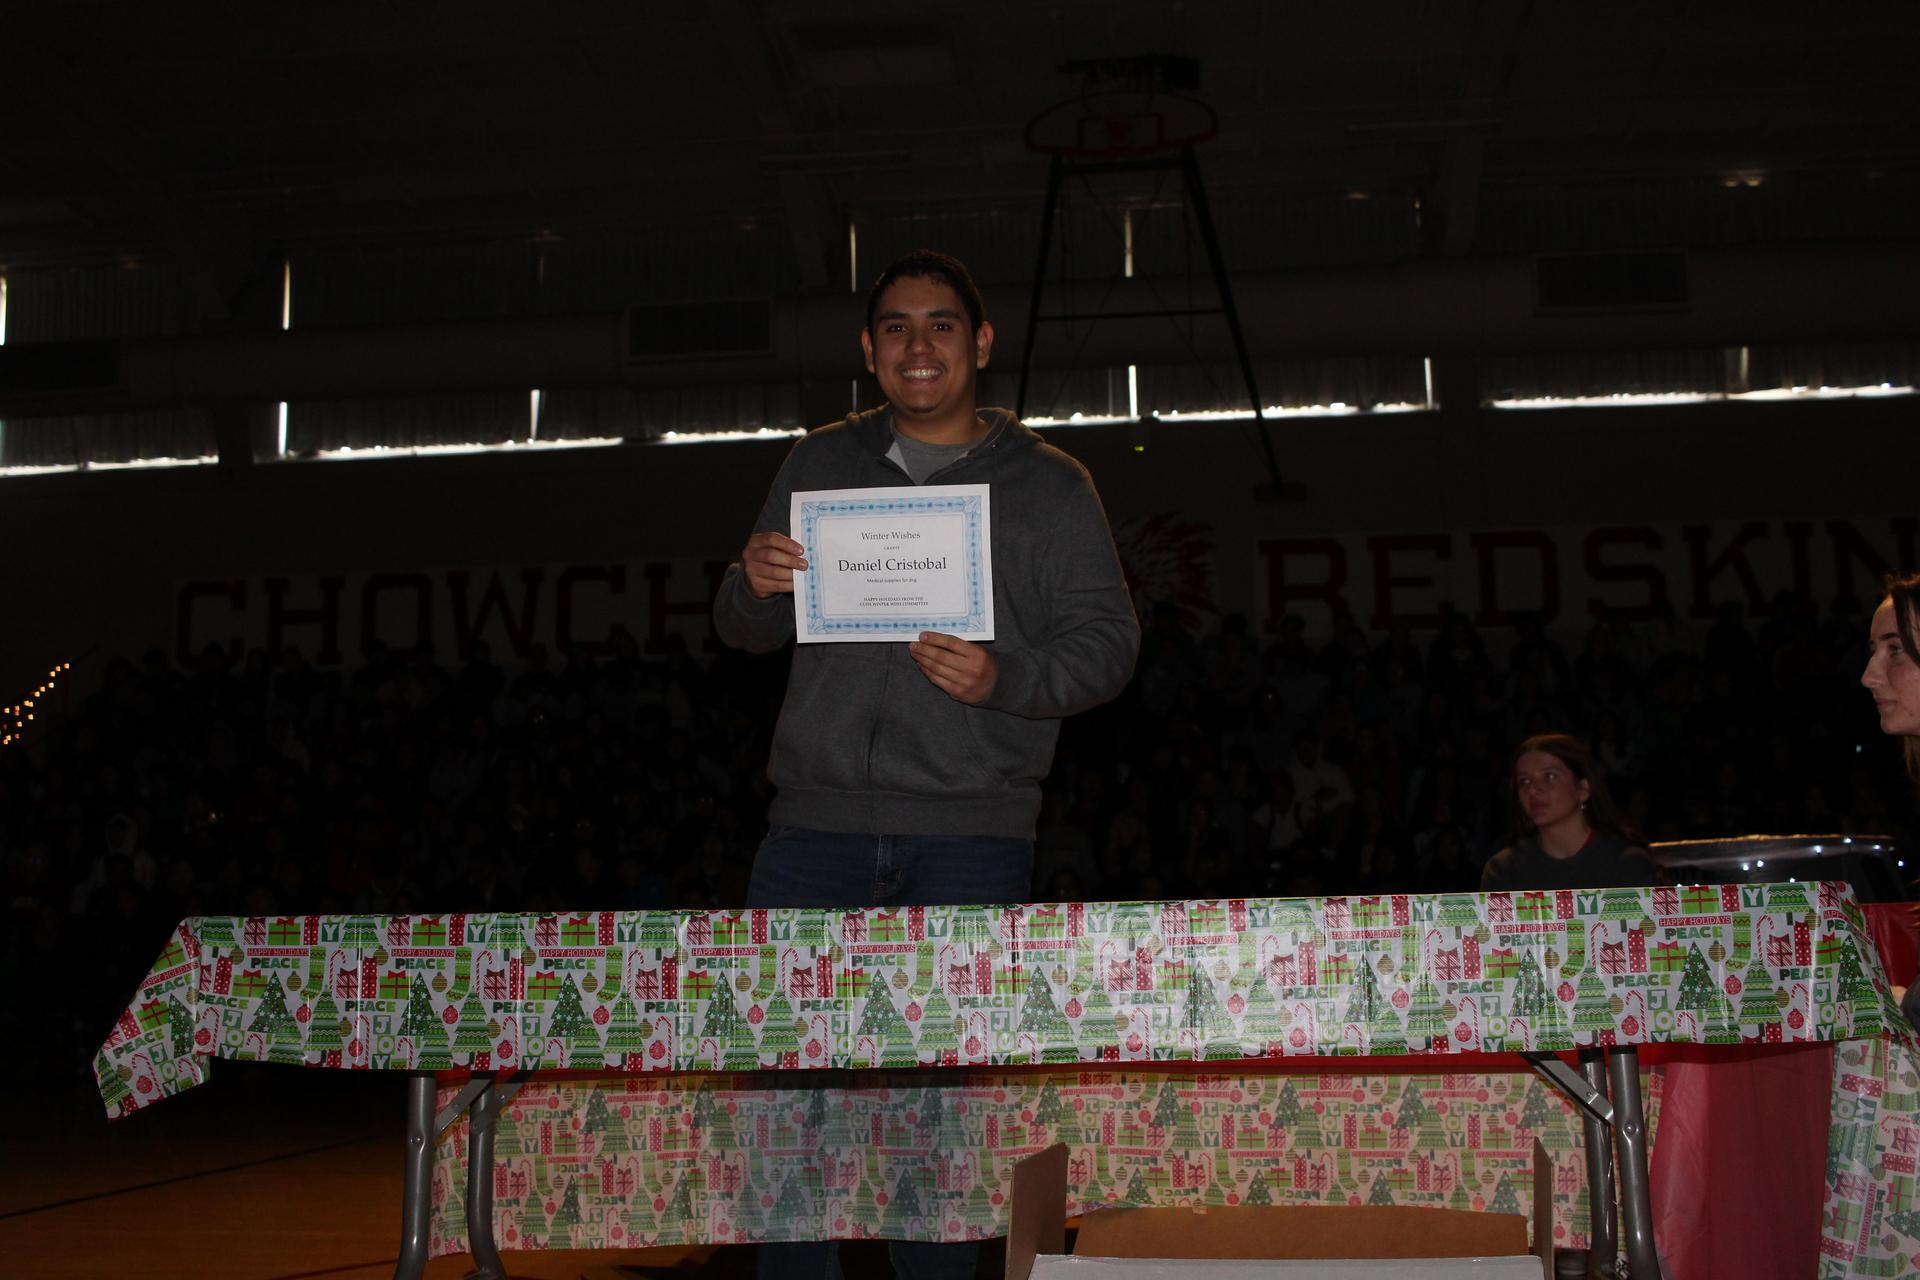 Daniel Cristobal opening his gift